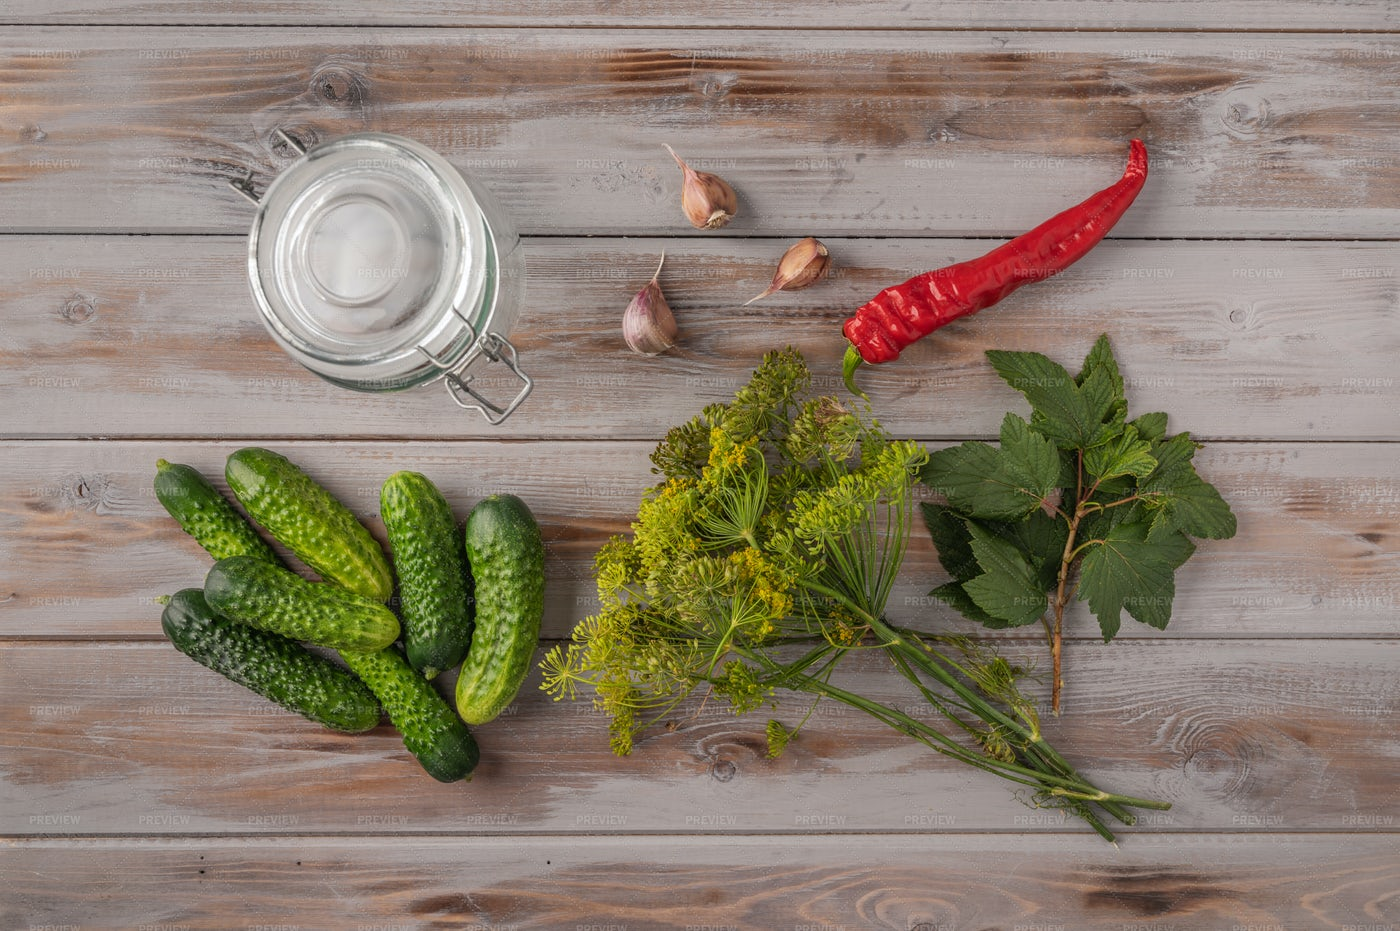 Fresh Cucumbers And Jar Background: Stock Photos